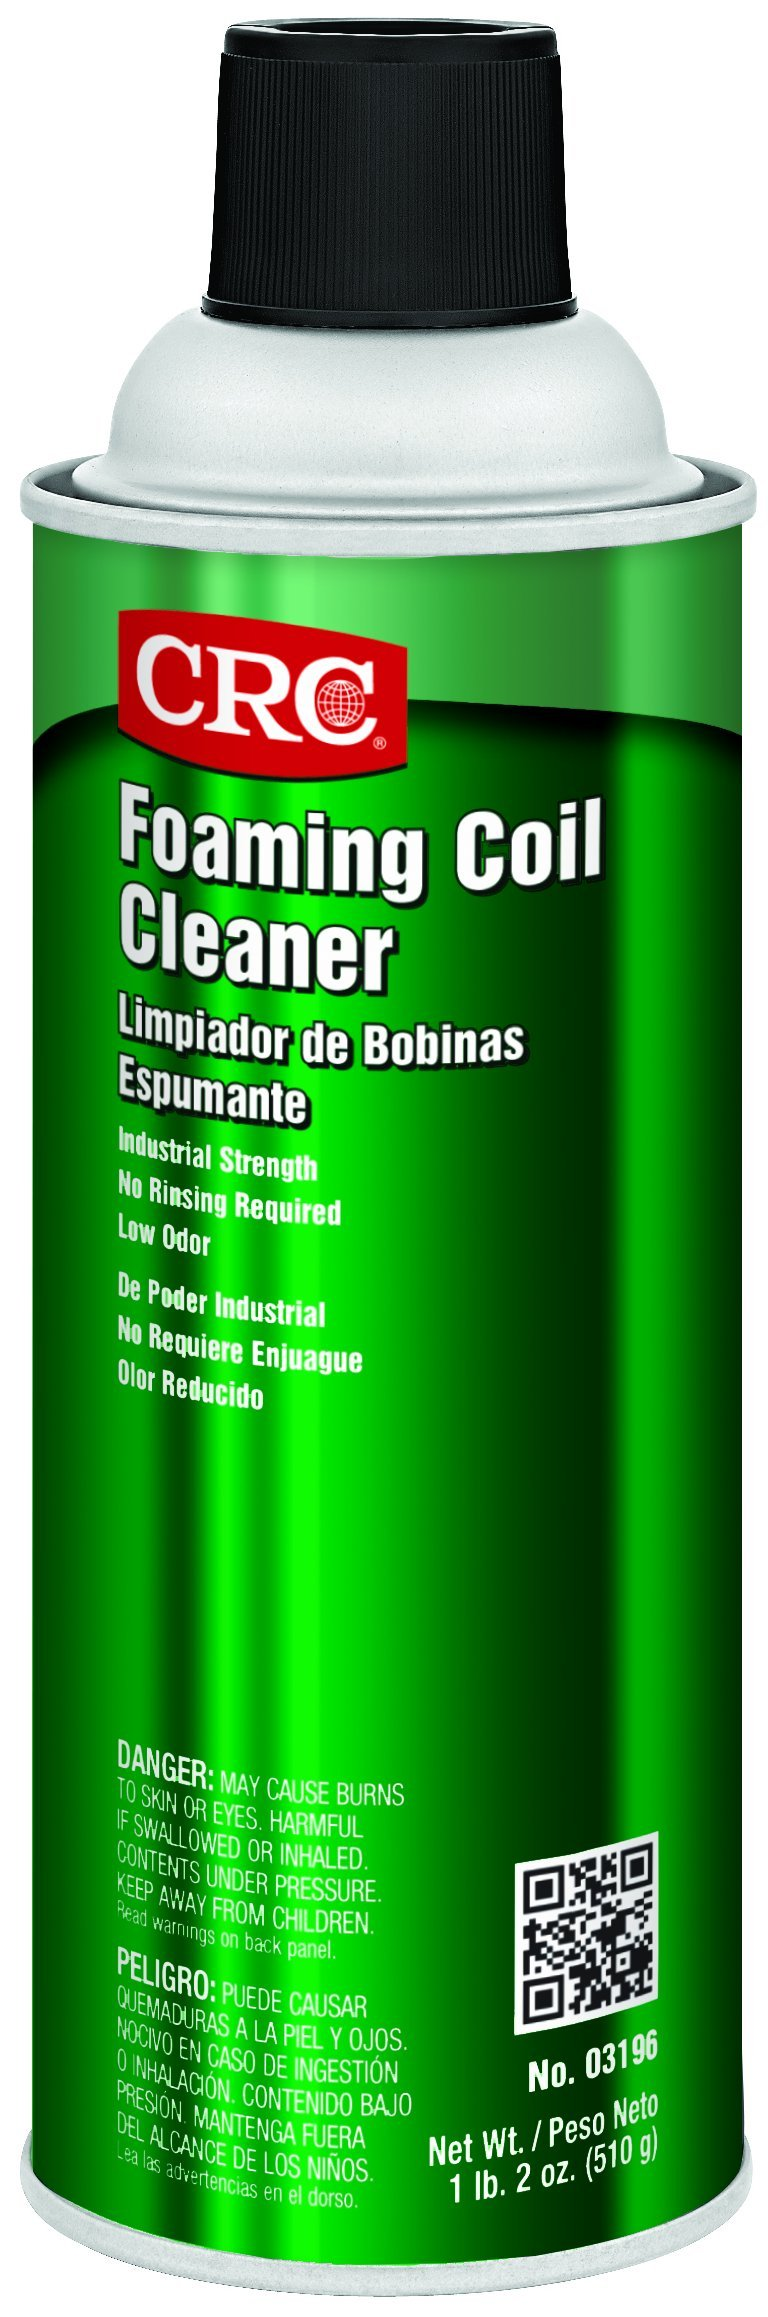 CRC Foaming Coil Cleaner, 18 oz Aerosol Can, Clear/Yellow by CRC